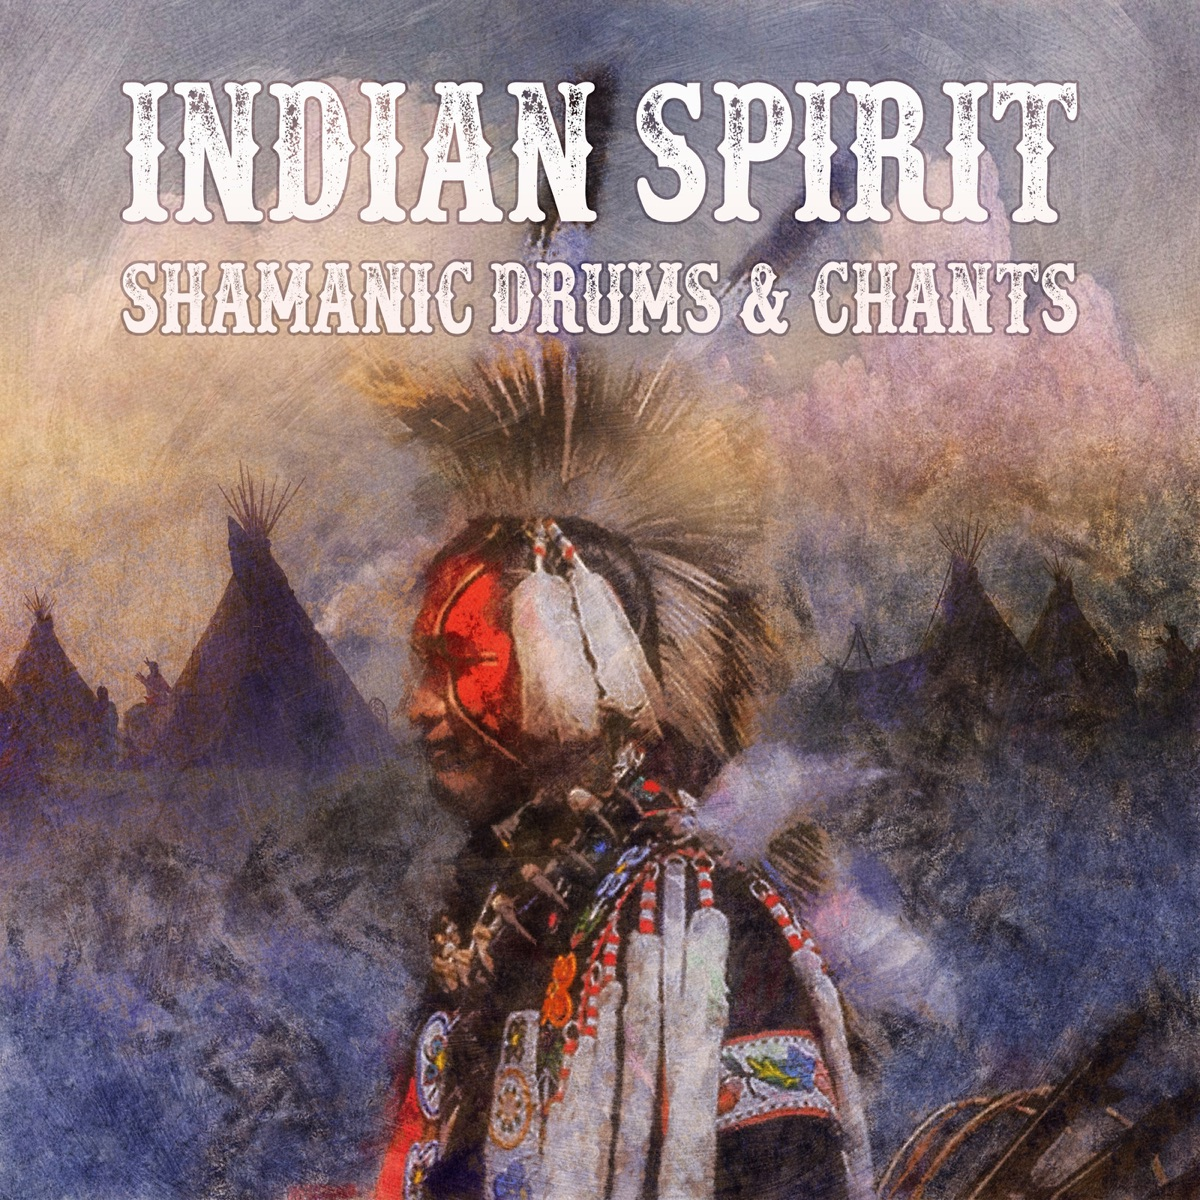 Indian Spirit: Shamanic Drums & Chants – Native American Tribal